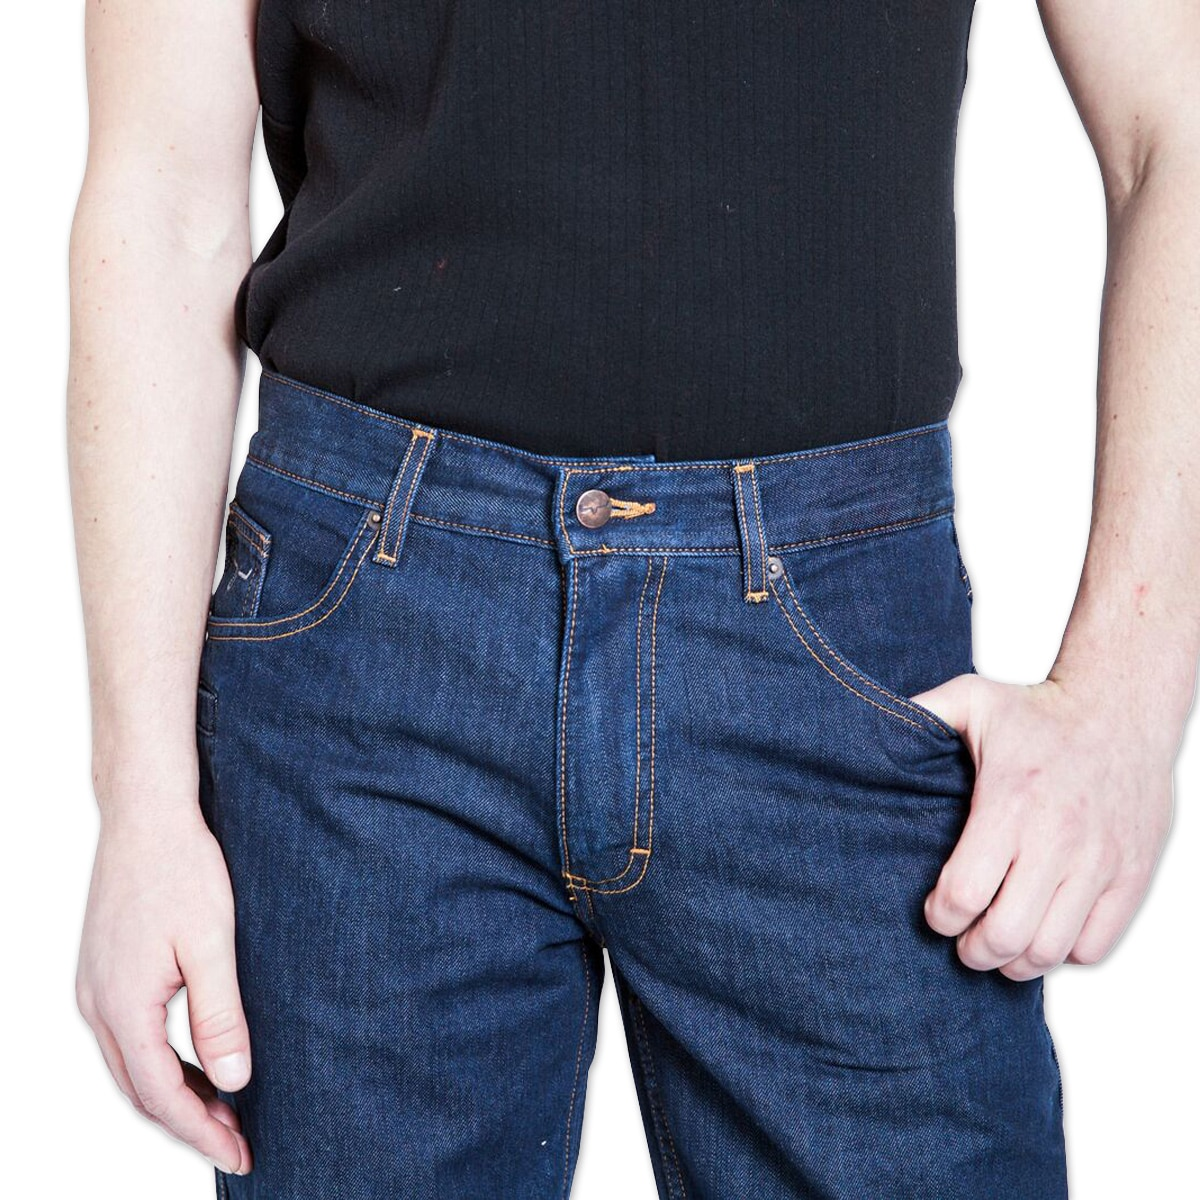 f33aacaf Kimes Ranch Men's Chuck Jeans